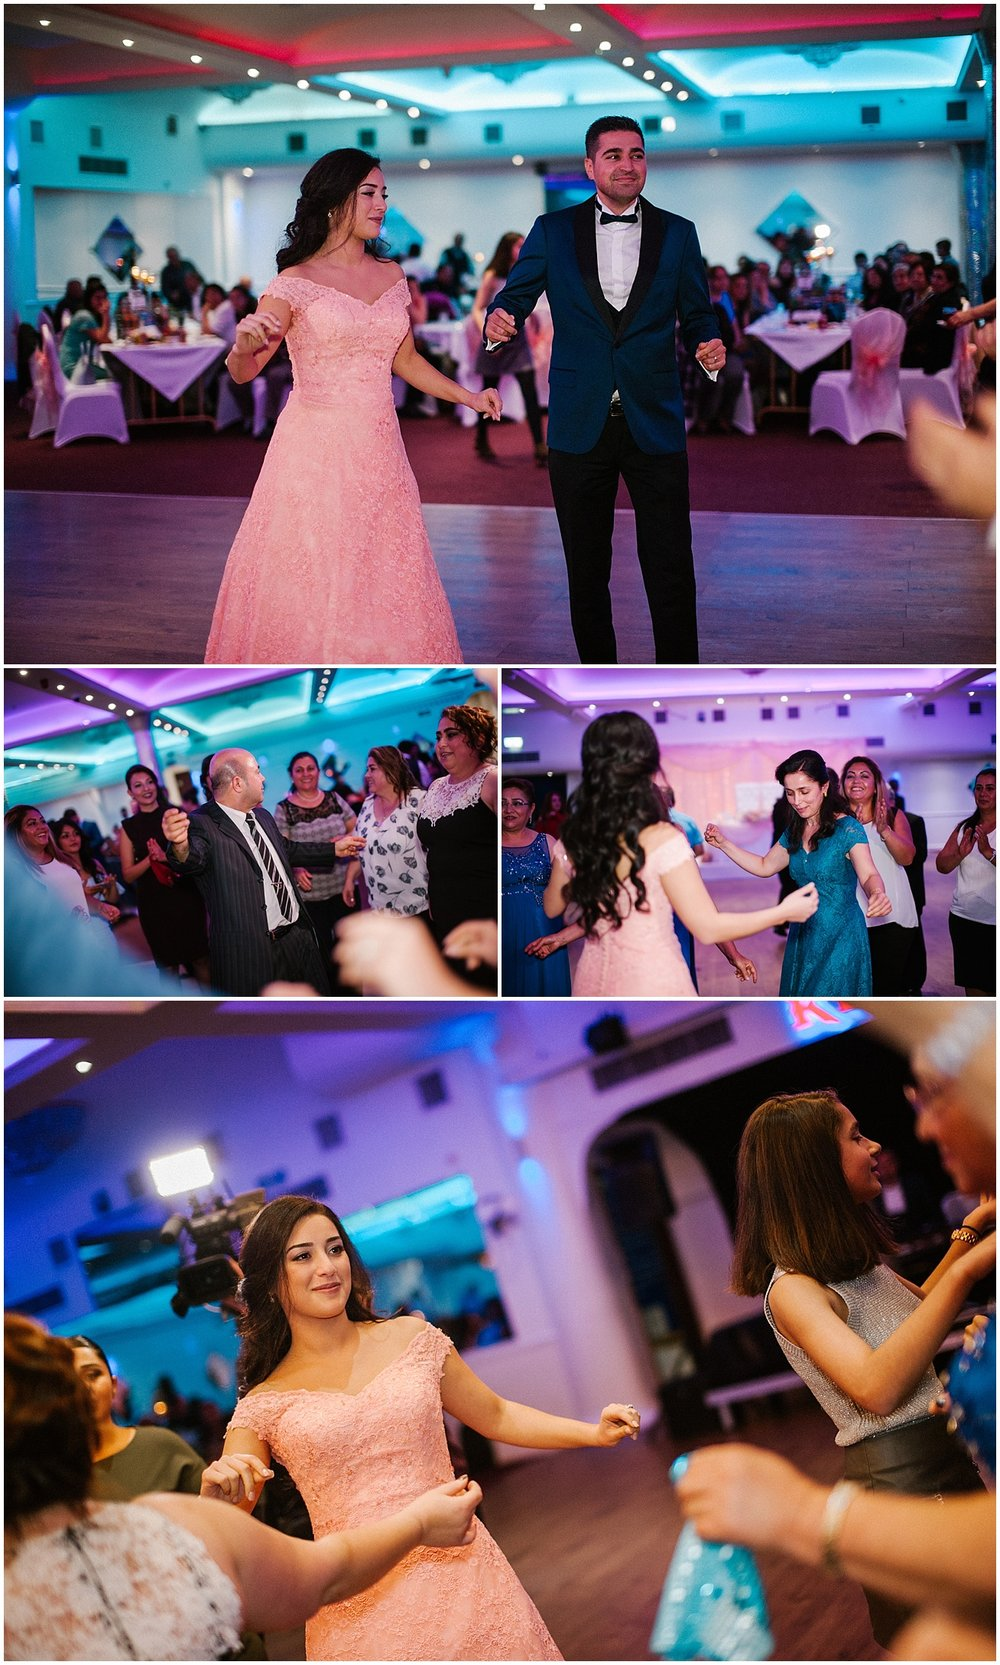 Wedding photographer london. Wedding at Kervan Banqueting suite.